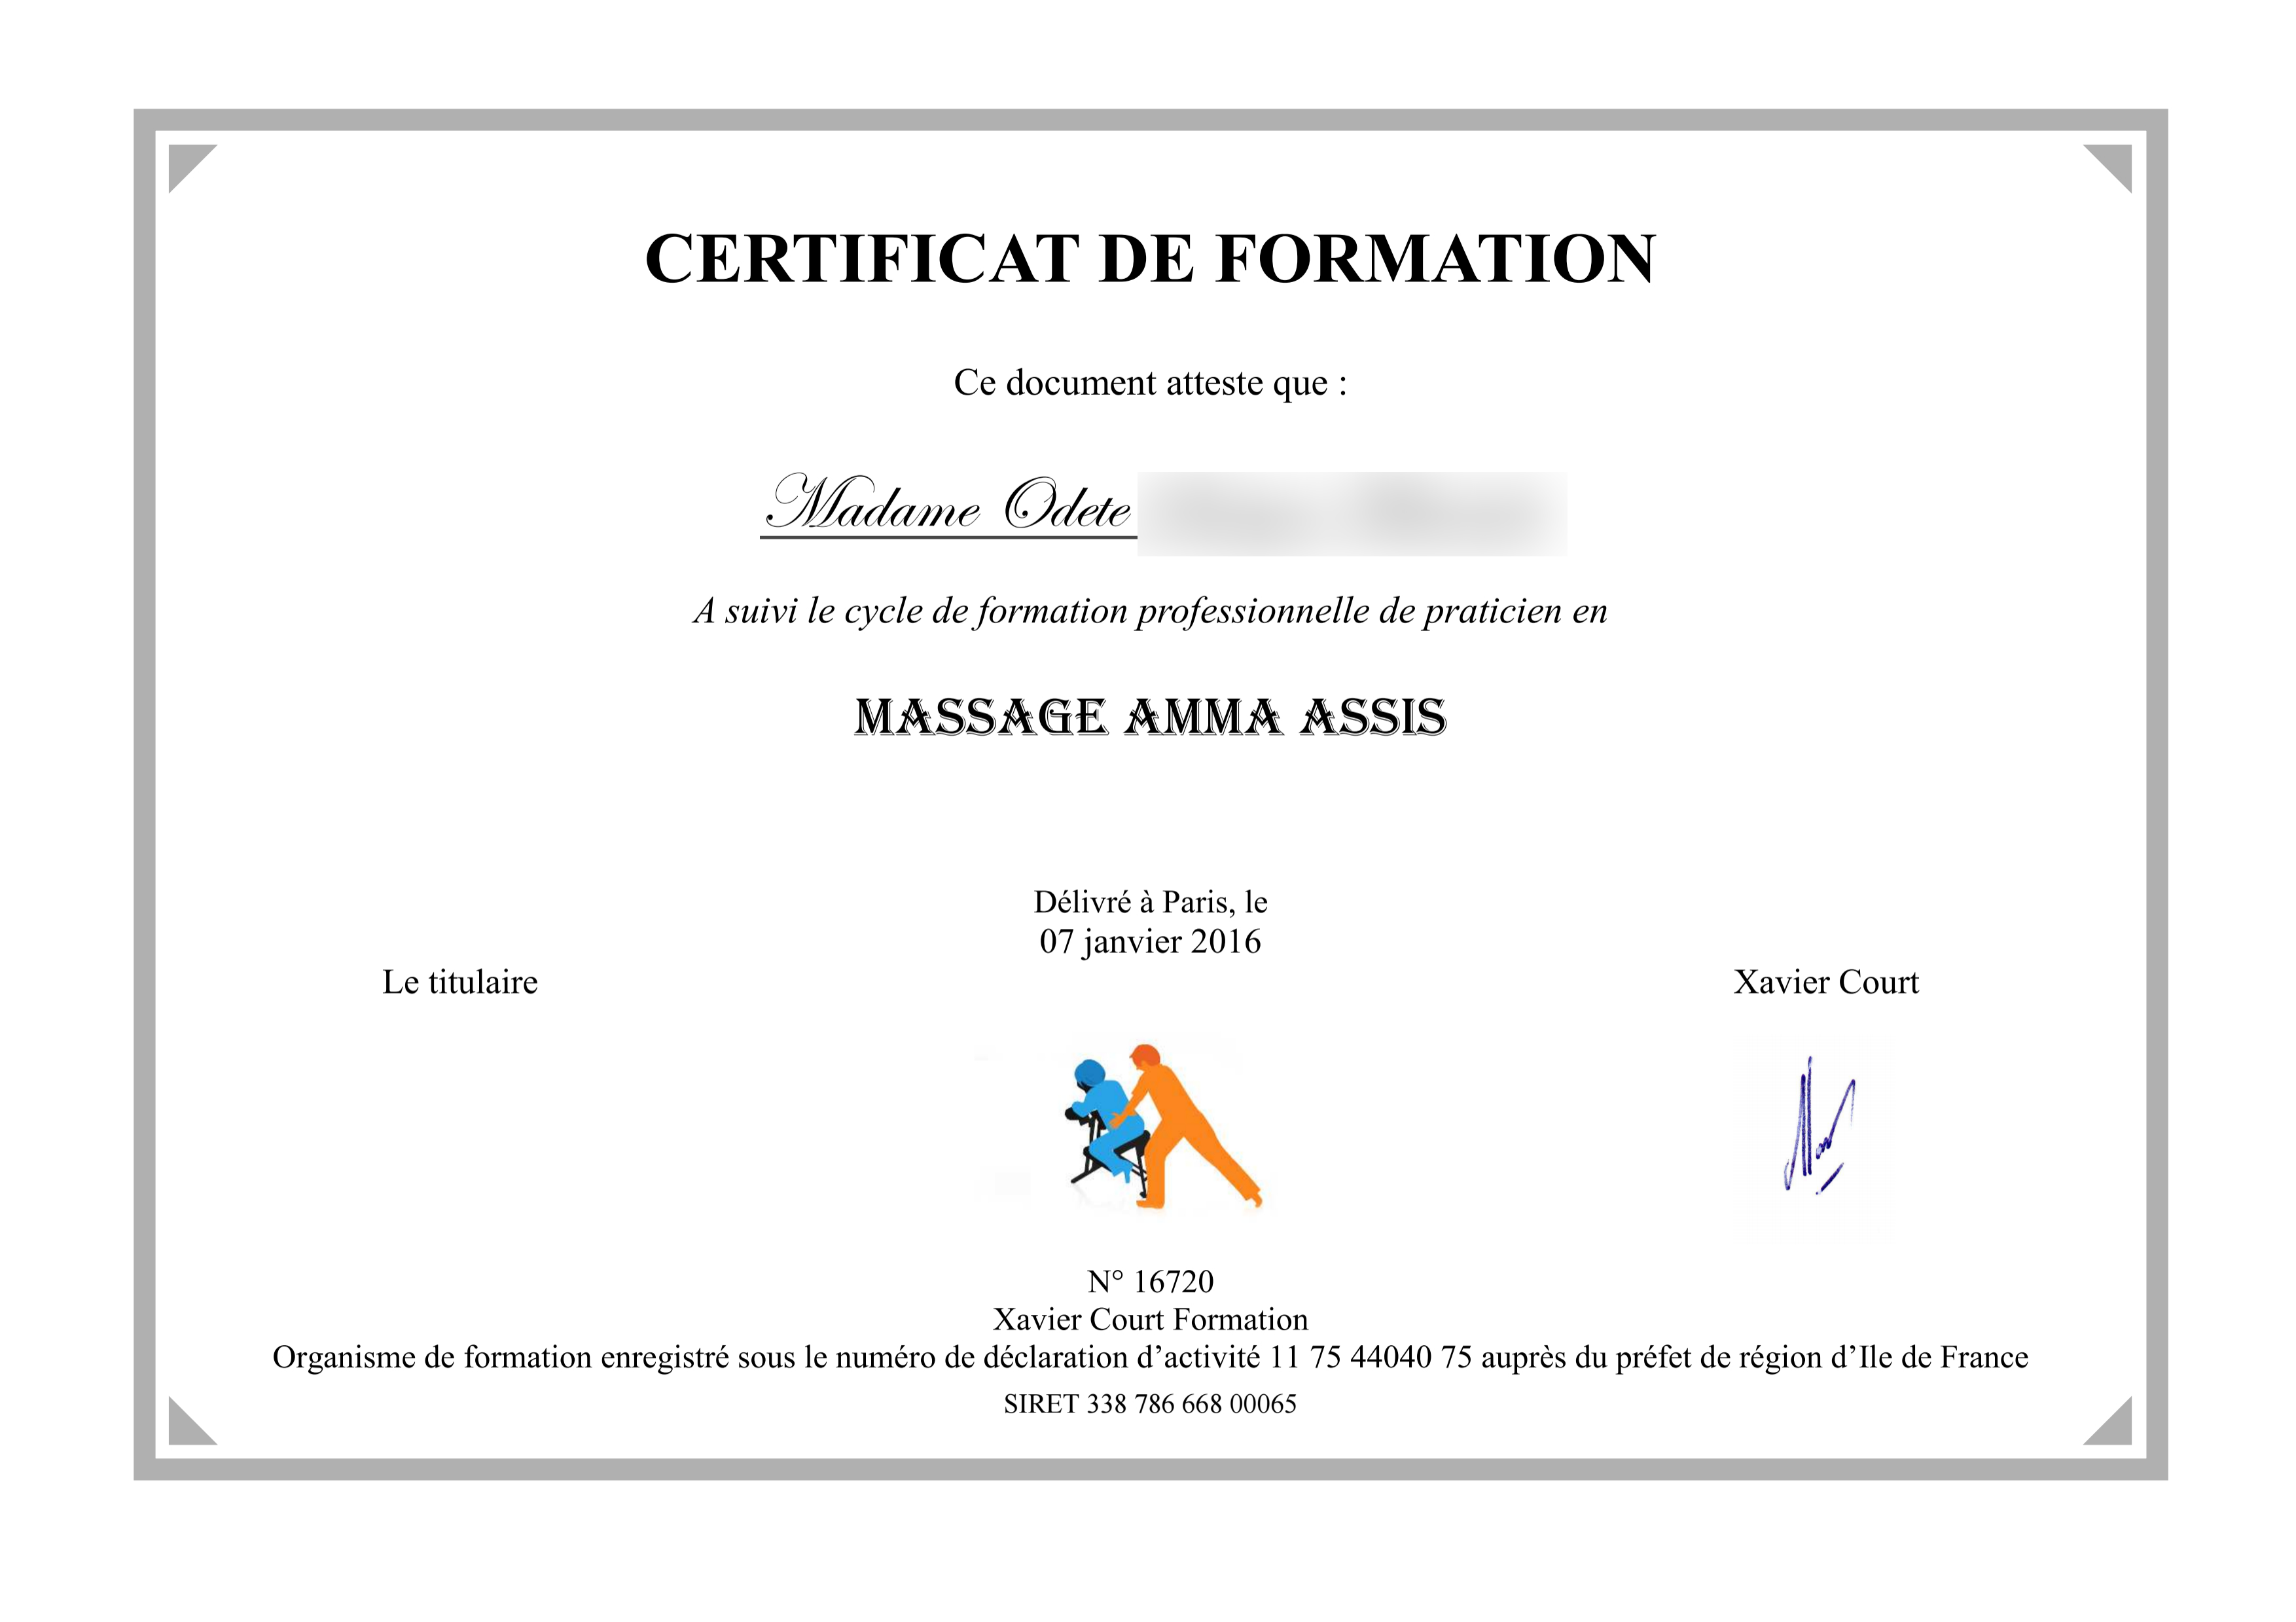 57f5394bc690a_CERTIFICAT FORMATION AMMA ASSIS.pdf